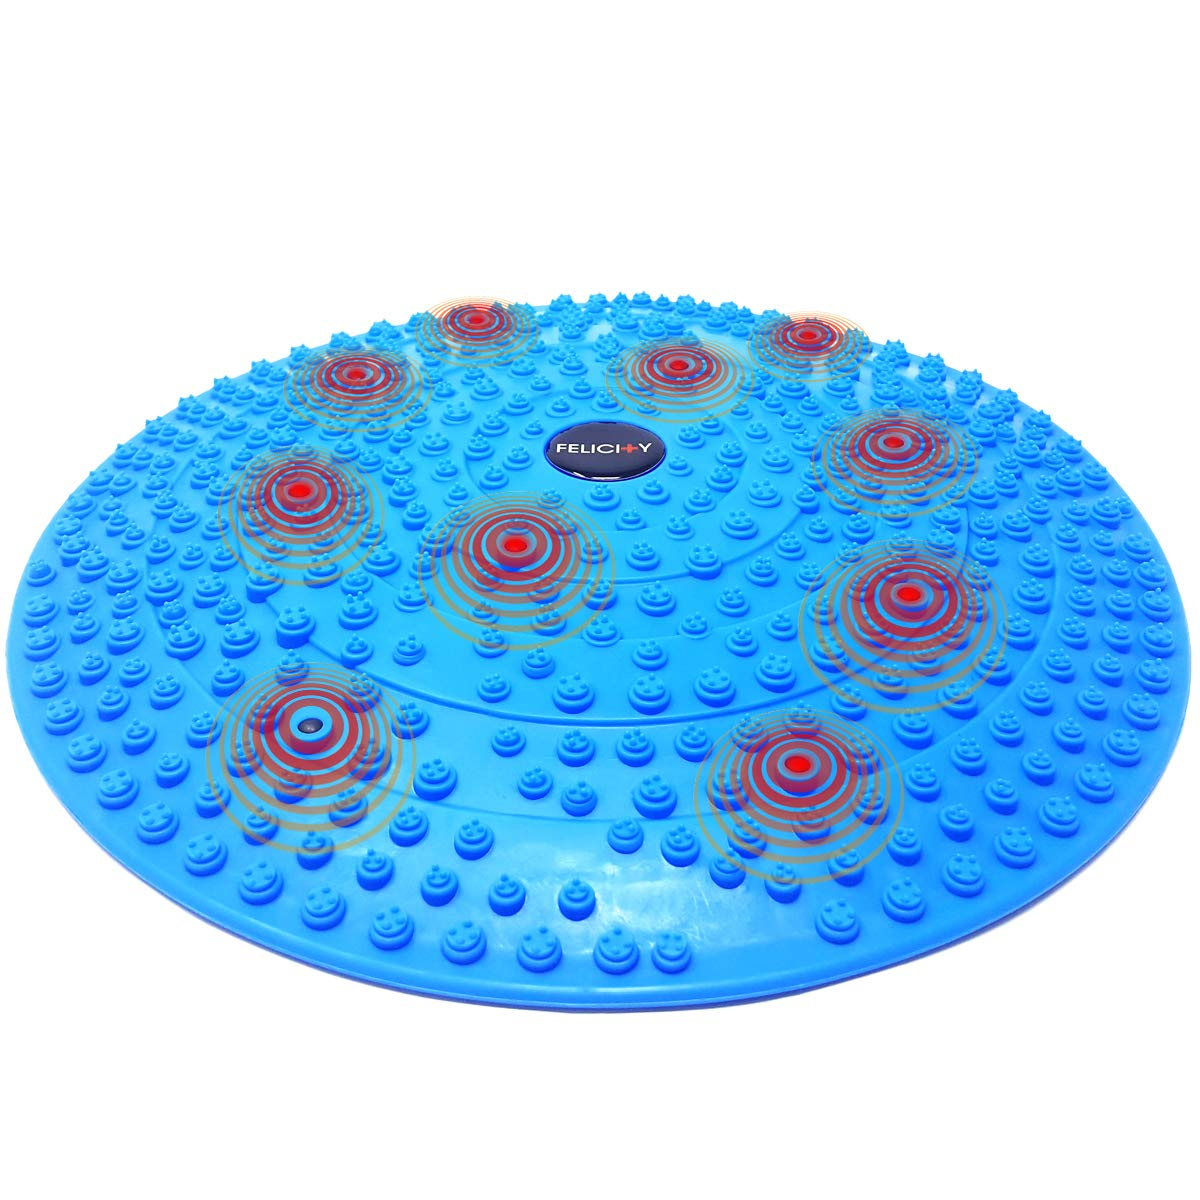 Daiwa Felicity Foot Massager Reflexology Mat with Magnetic Therapy Acupressure Disc by Daiwa Felicity